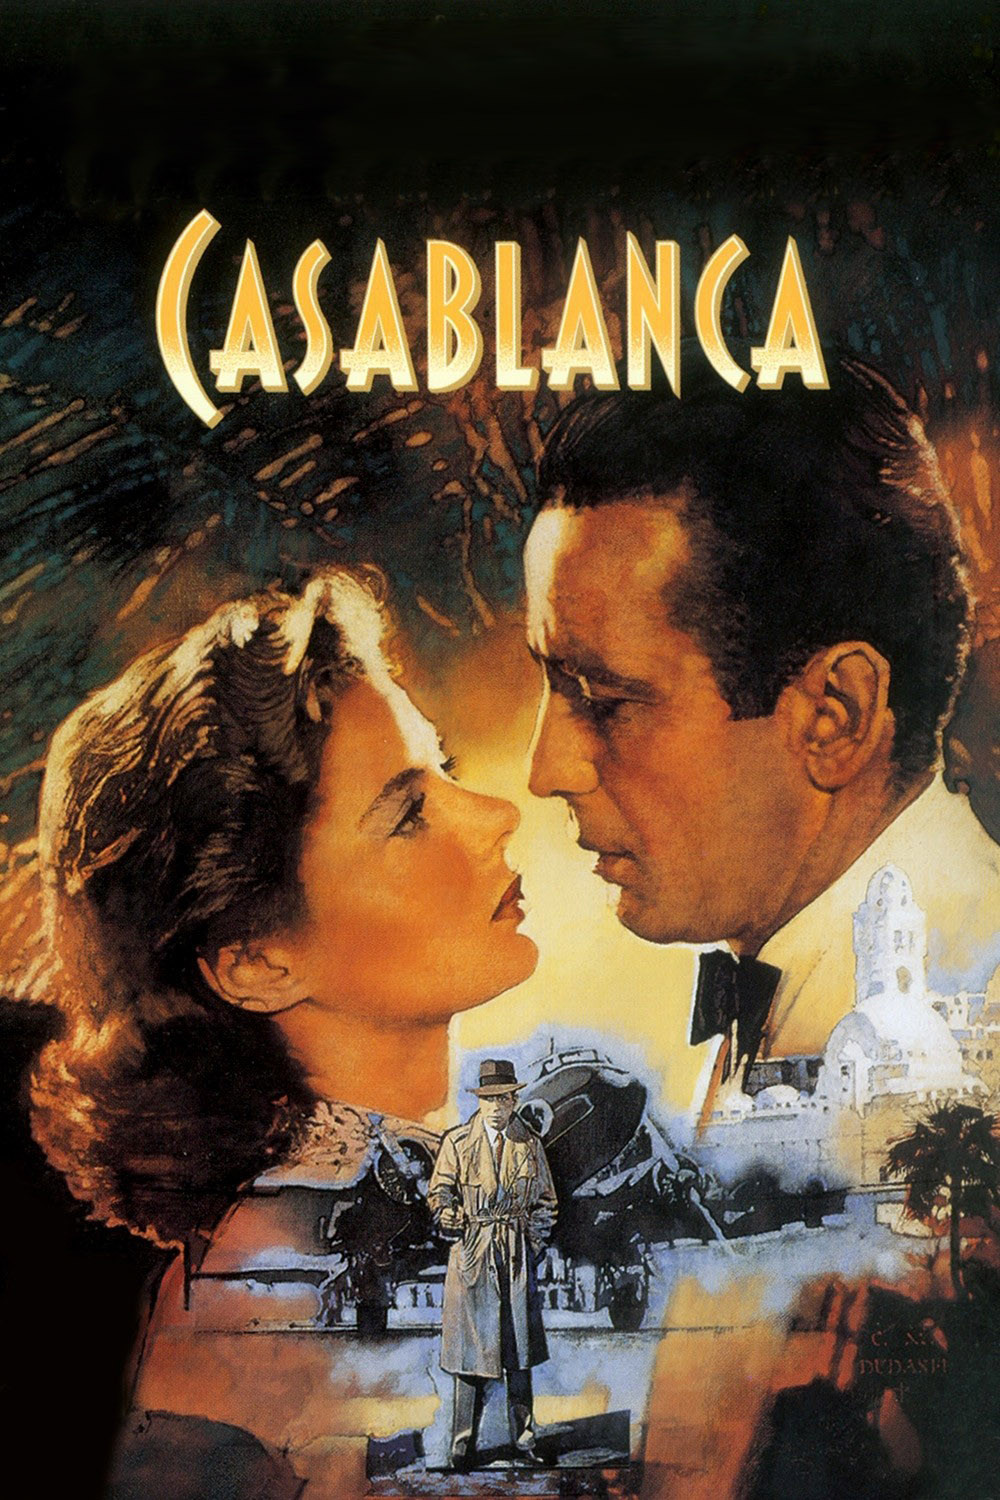 a movie review of casablanca a timeless classic starring humphrey bogart and ingrid bergman Posts about casablanca movie review written by hookedonfilmwa hooked on film movie reviews of major hollywood blockbusters, independent films and west australian films menu skip to content home about casablanca movie review hollywood retro film festival – casablanca november 28, 2015 november 28.